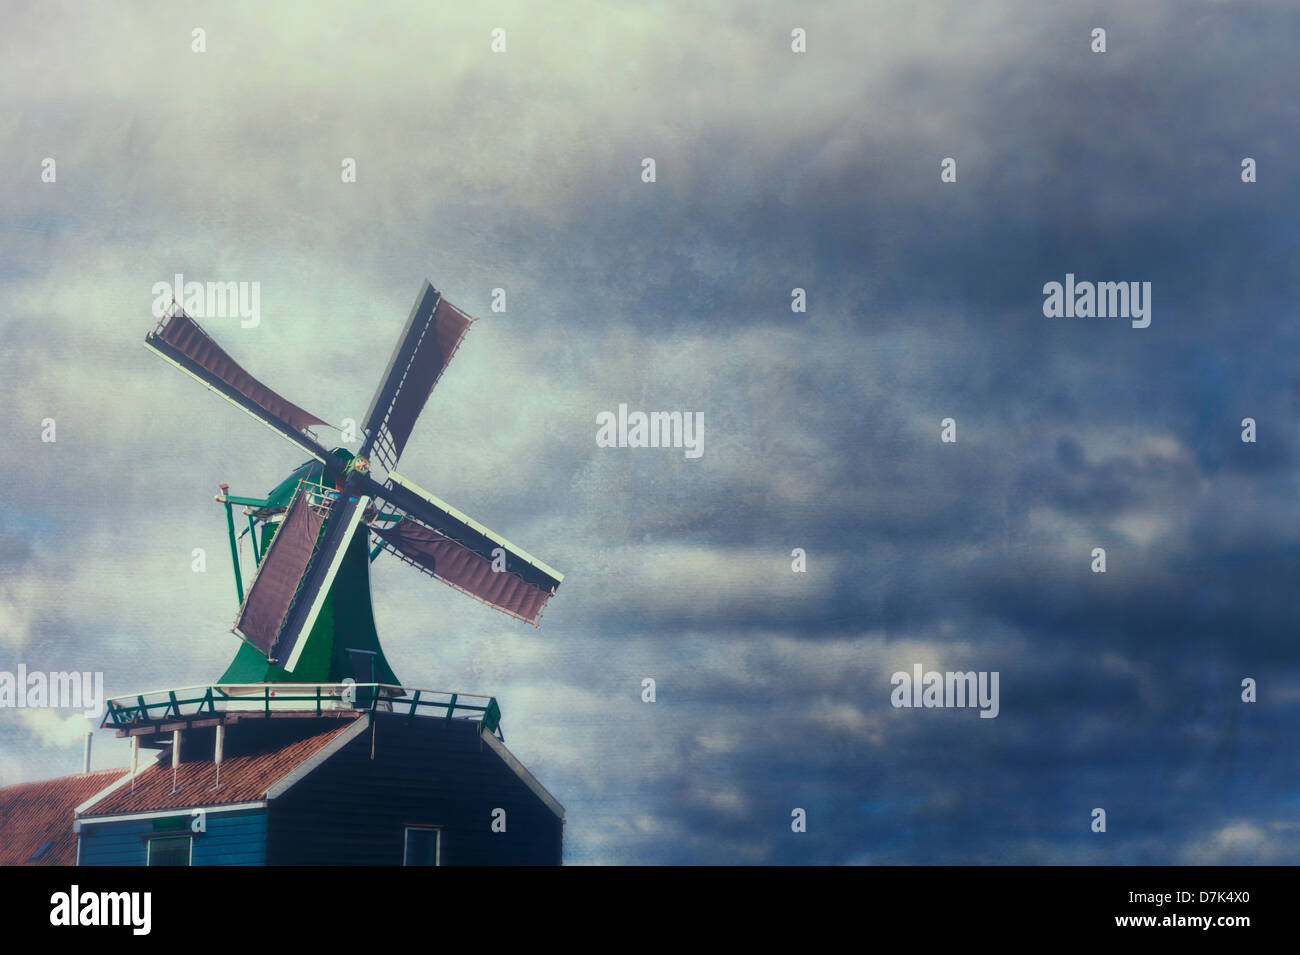 a windmill in front of stormy sky - Stock Image